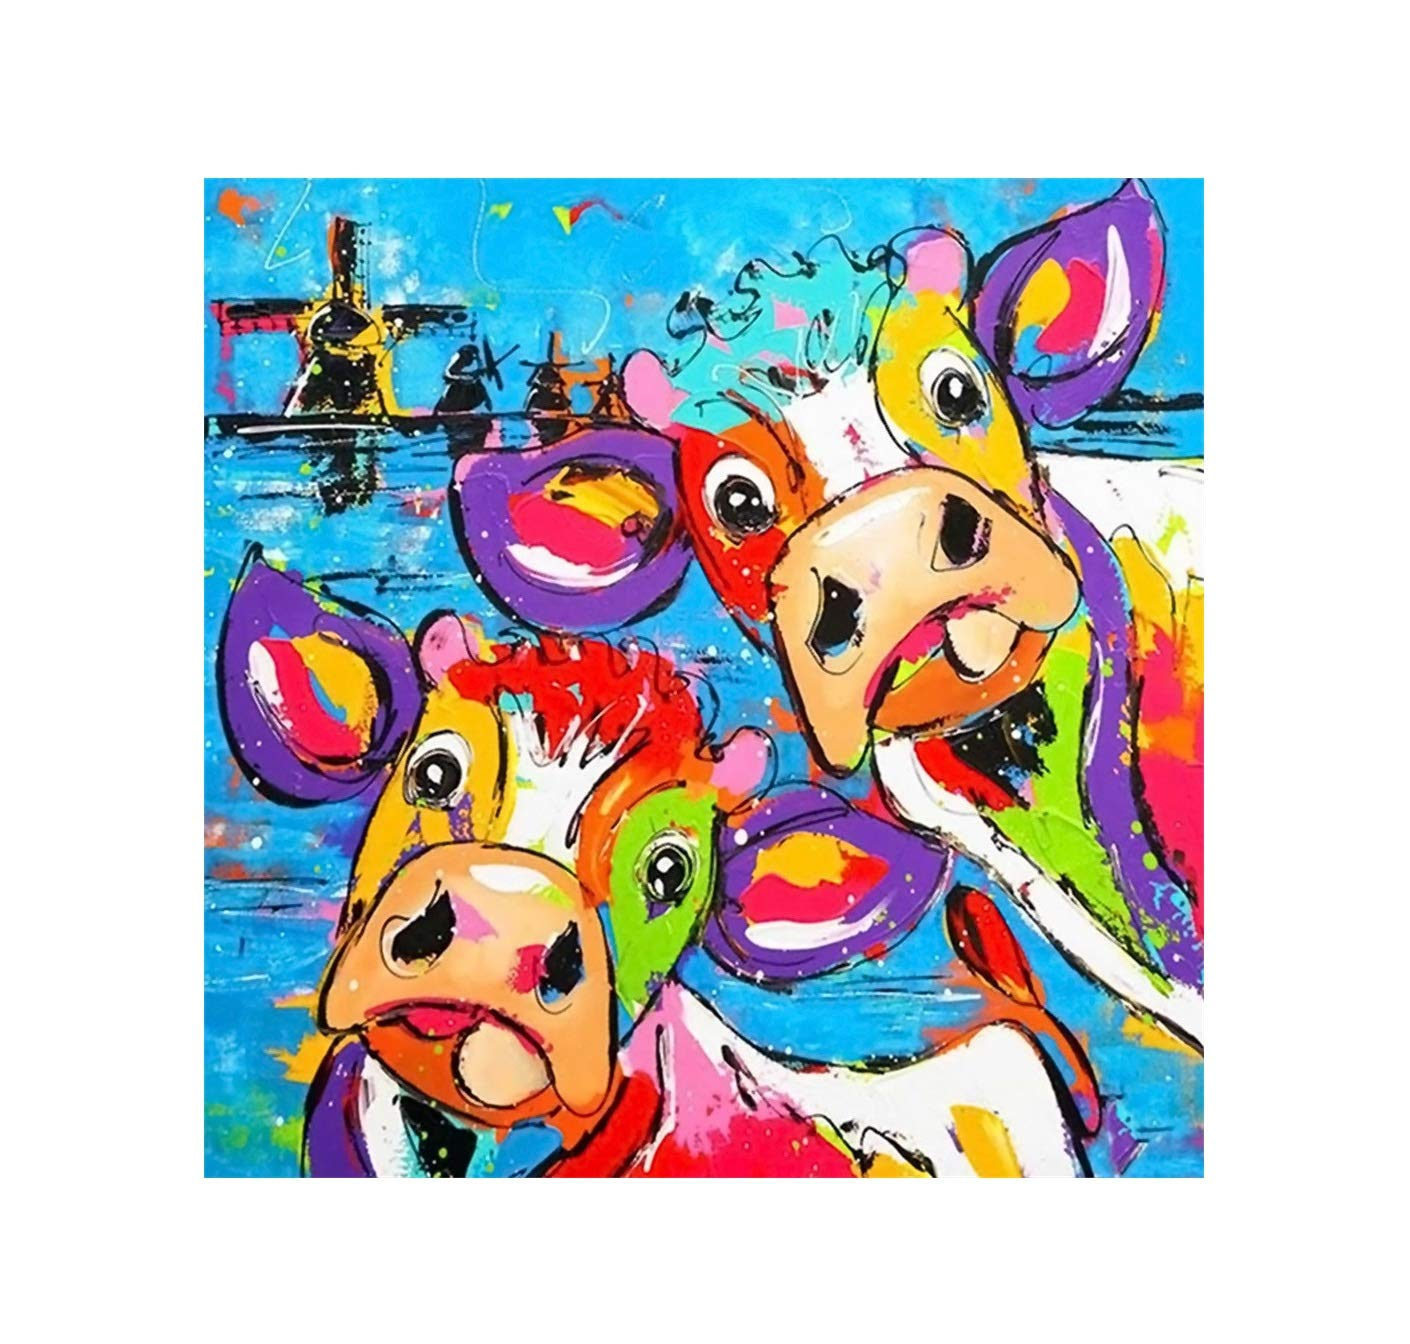 DIY 5D Diamond Painting Kit, Hoshell Graffiti Cow Embroidery Cross Stitch Arts Craft Canvas Wall Decor Diamond Painting for Adults by Number Kit Full Drill Decoration 30x30cm (E)